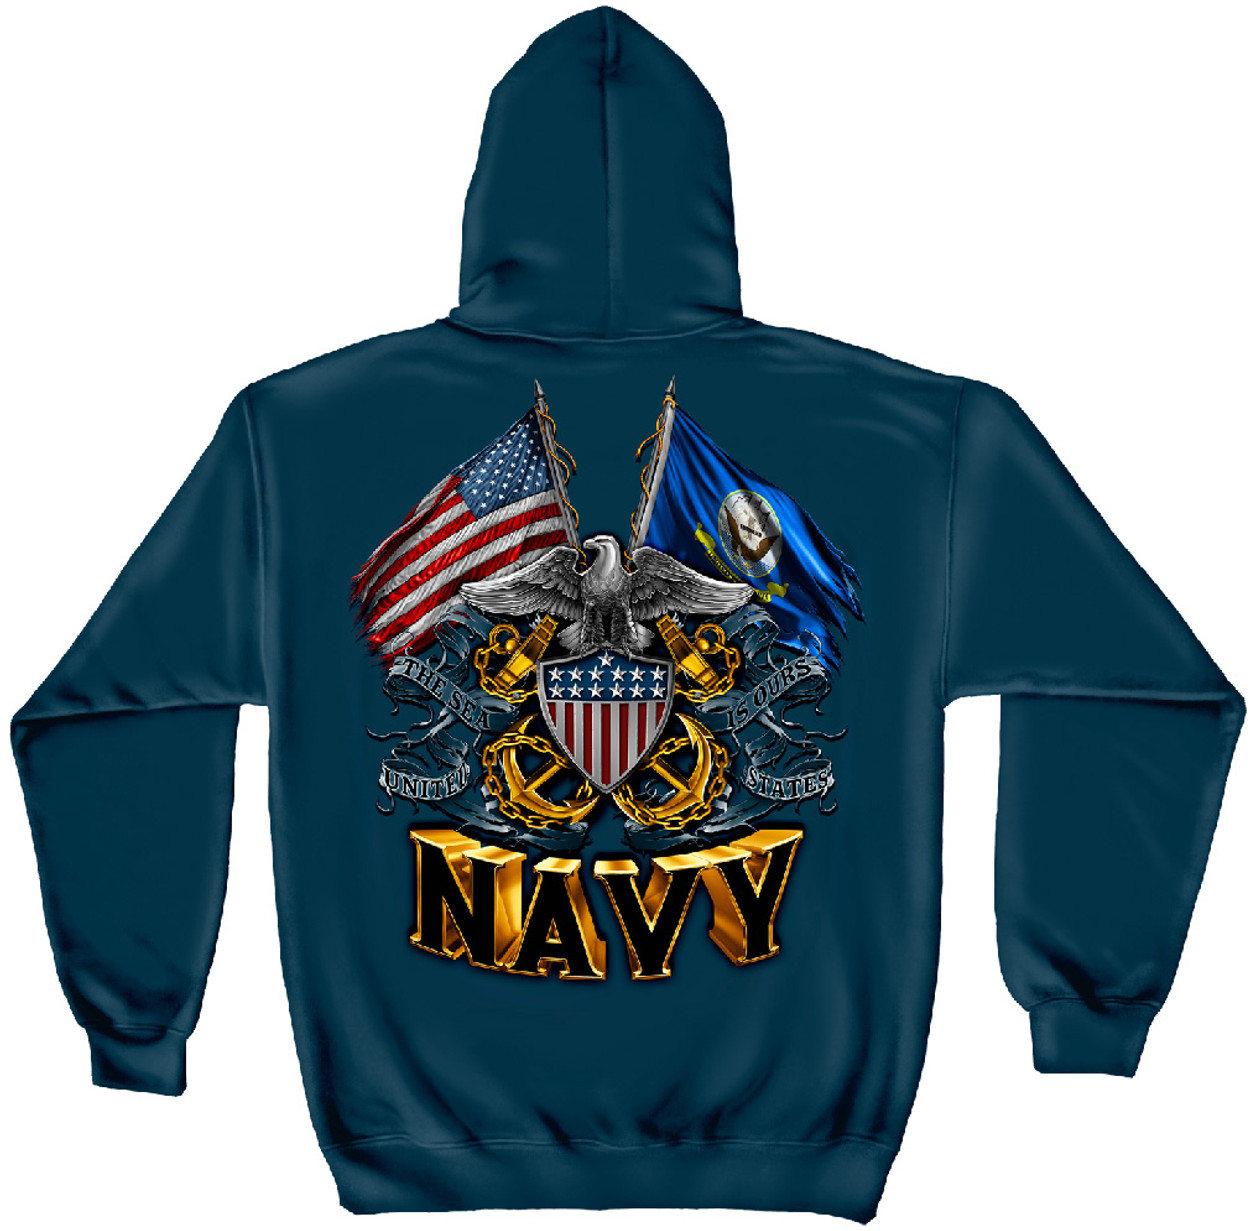 b14549829 OFFICIALLY-LICENSED-U.S.NAVY,WITH-NAVY-SYMBOL & DOUBLE-ANCHORS ...